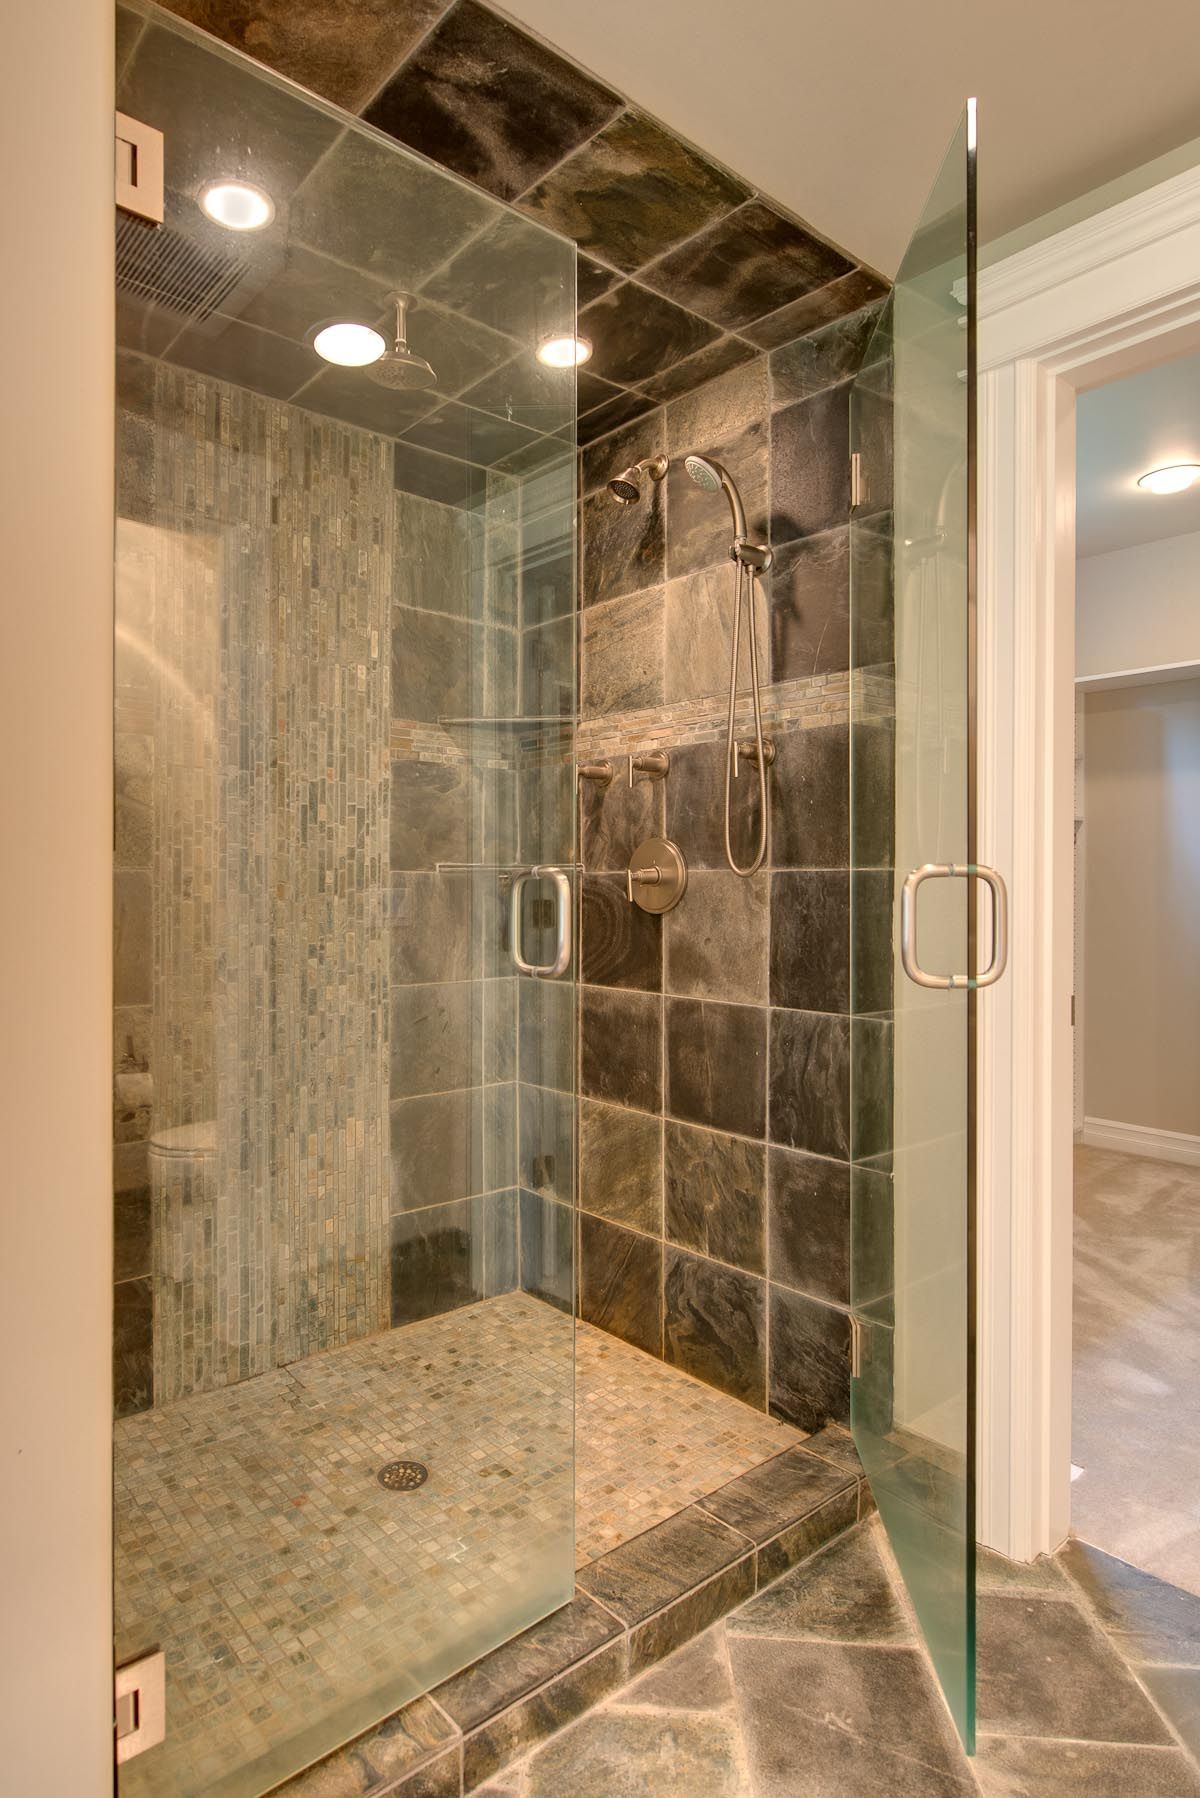 bathroom monumental mosaic bathroom tiles ideas with unique design for the shower tray and as accent on the shower wall also large natural stone tiles for